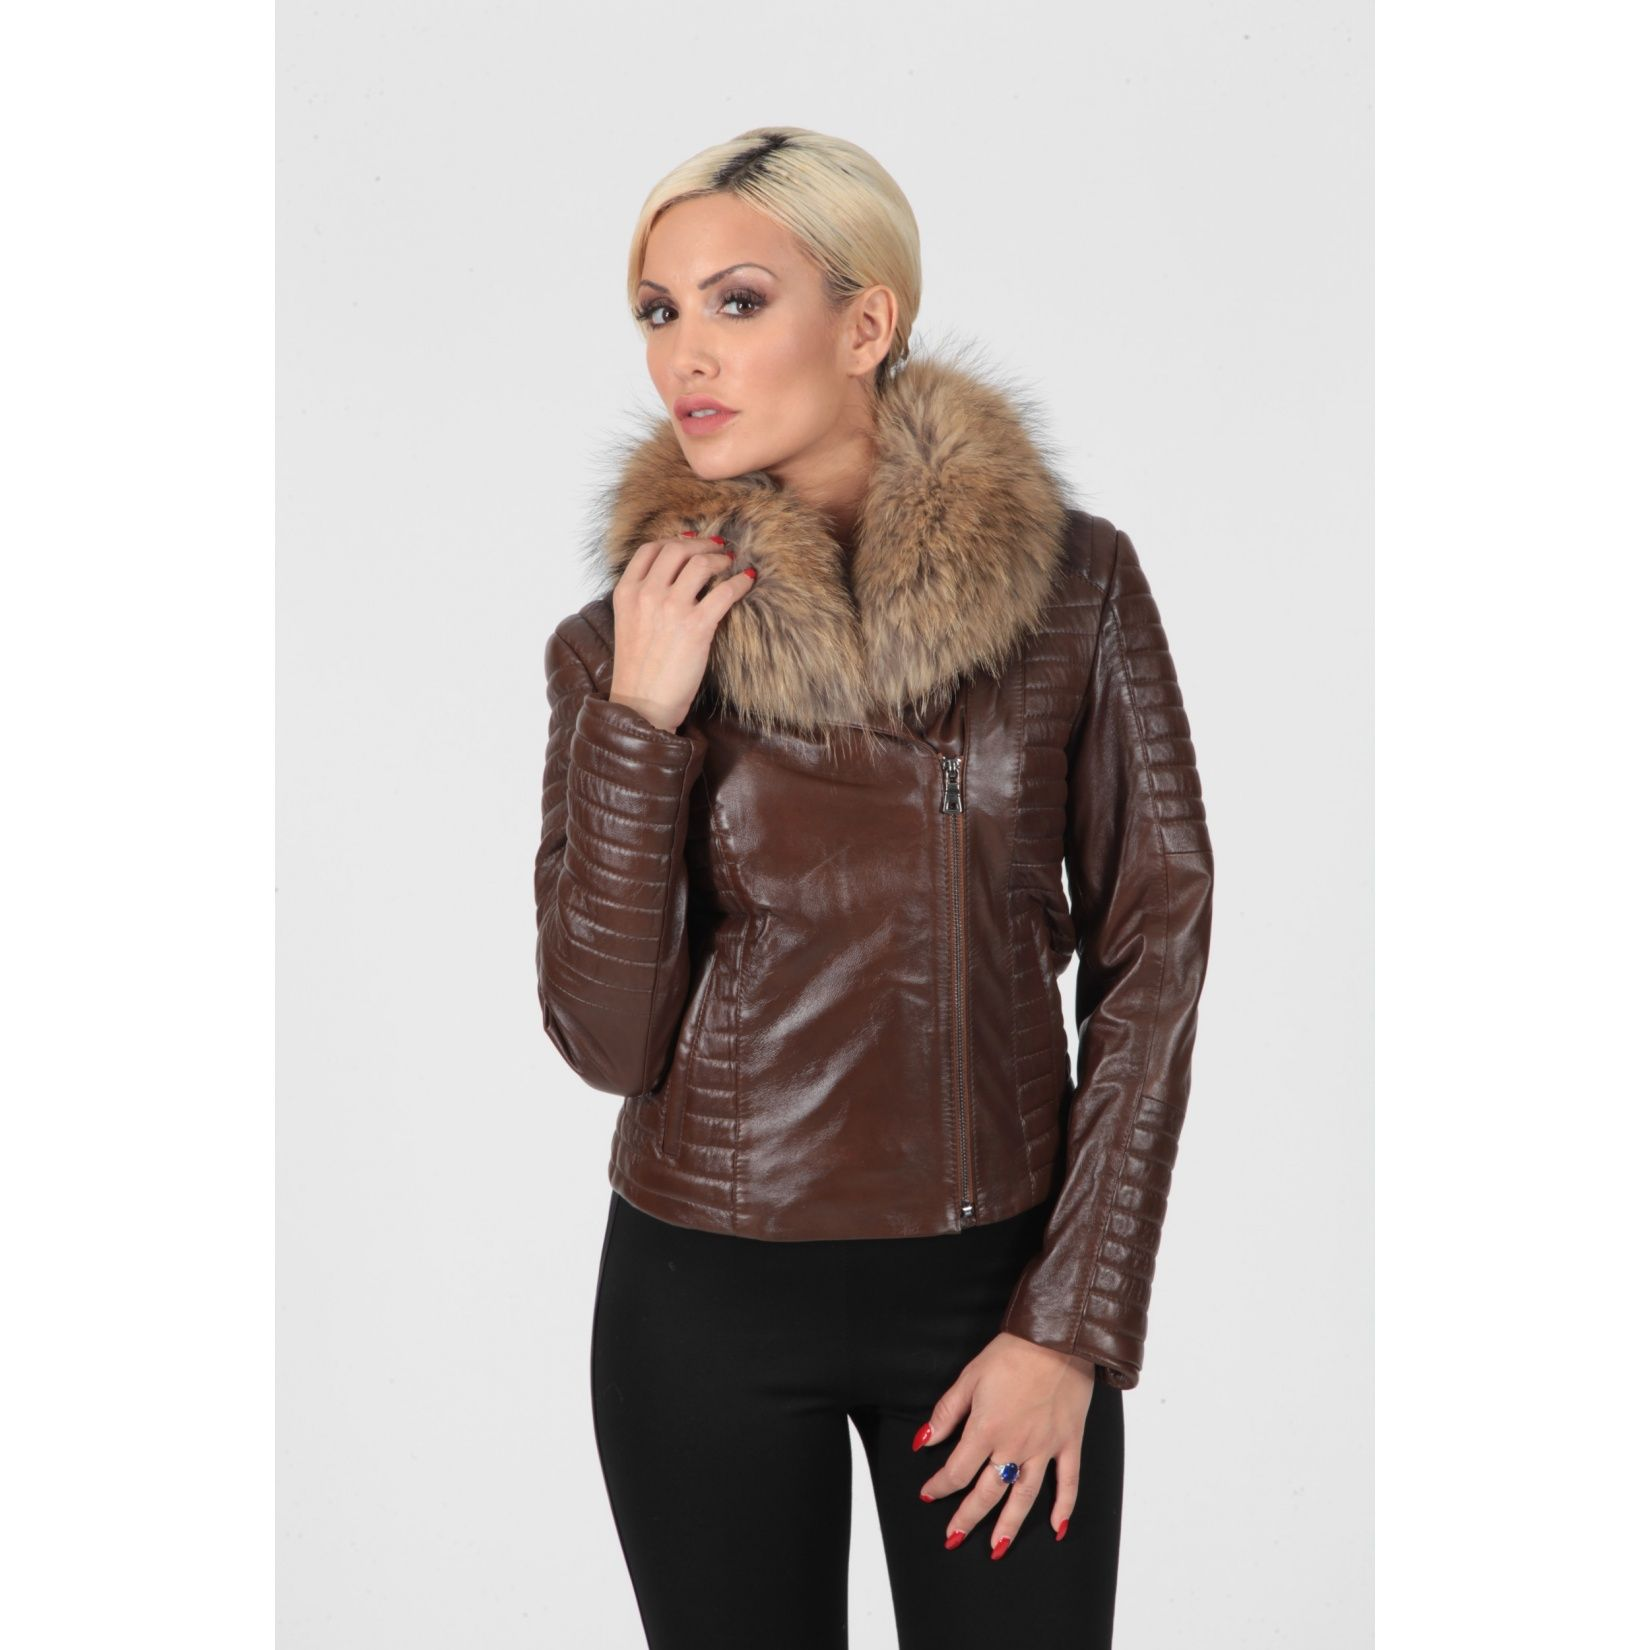 Women's brown laser perforated leopard design real leather